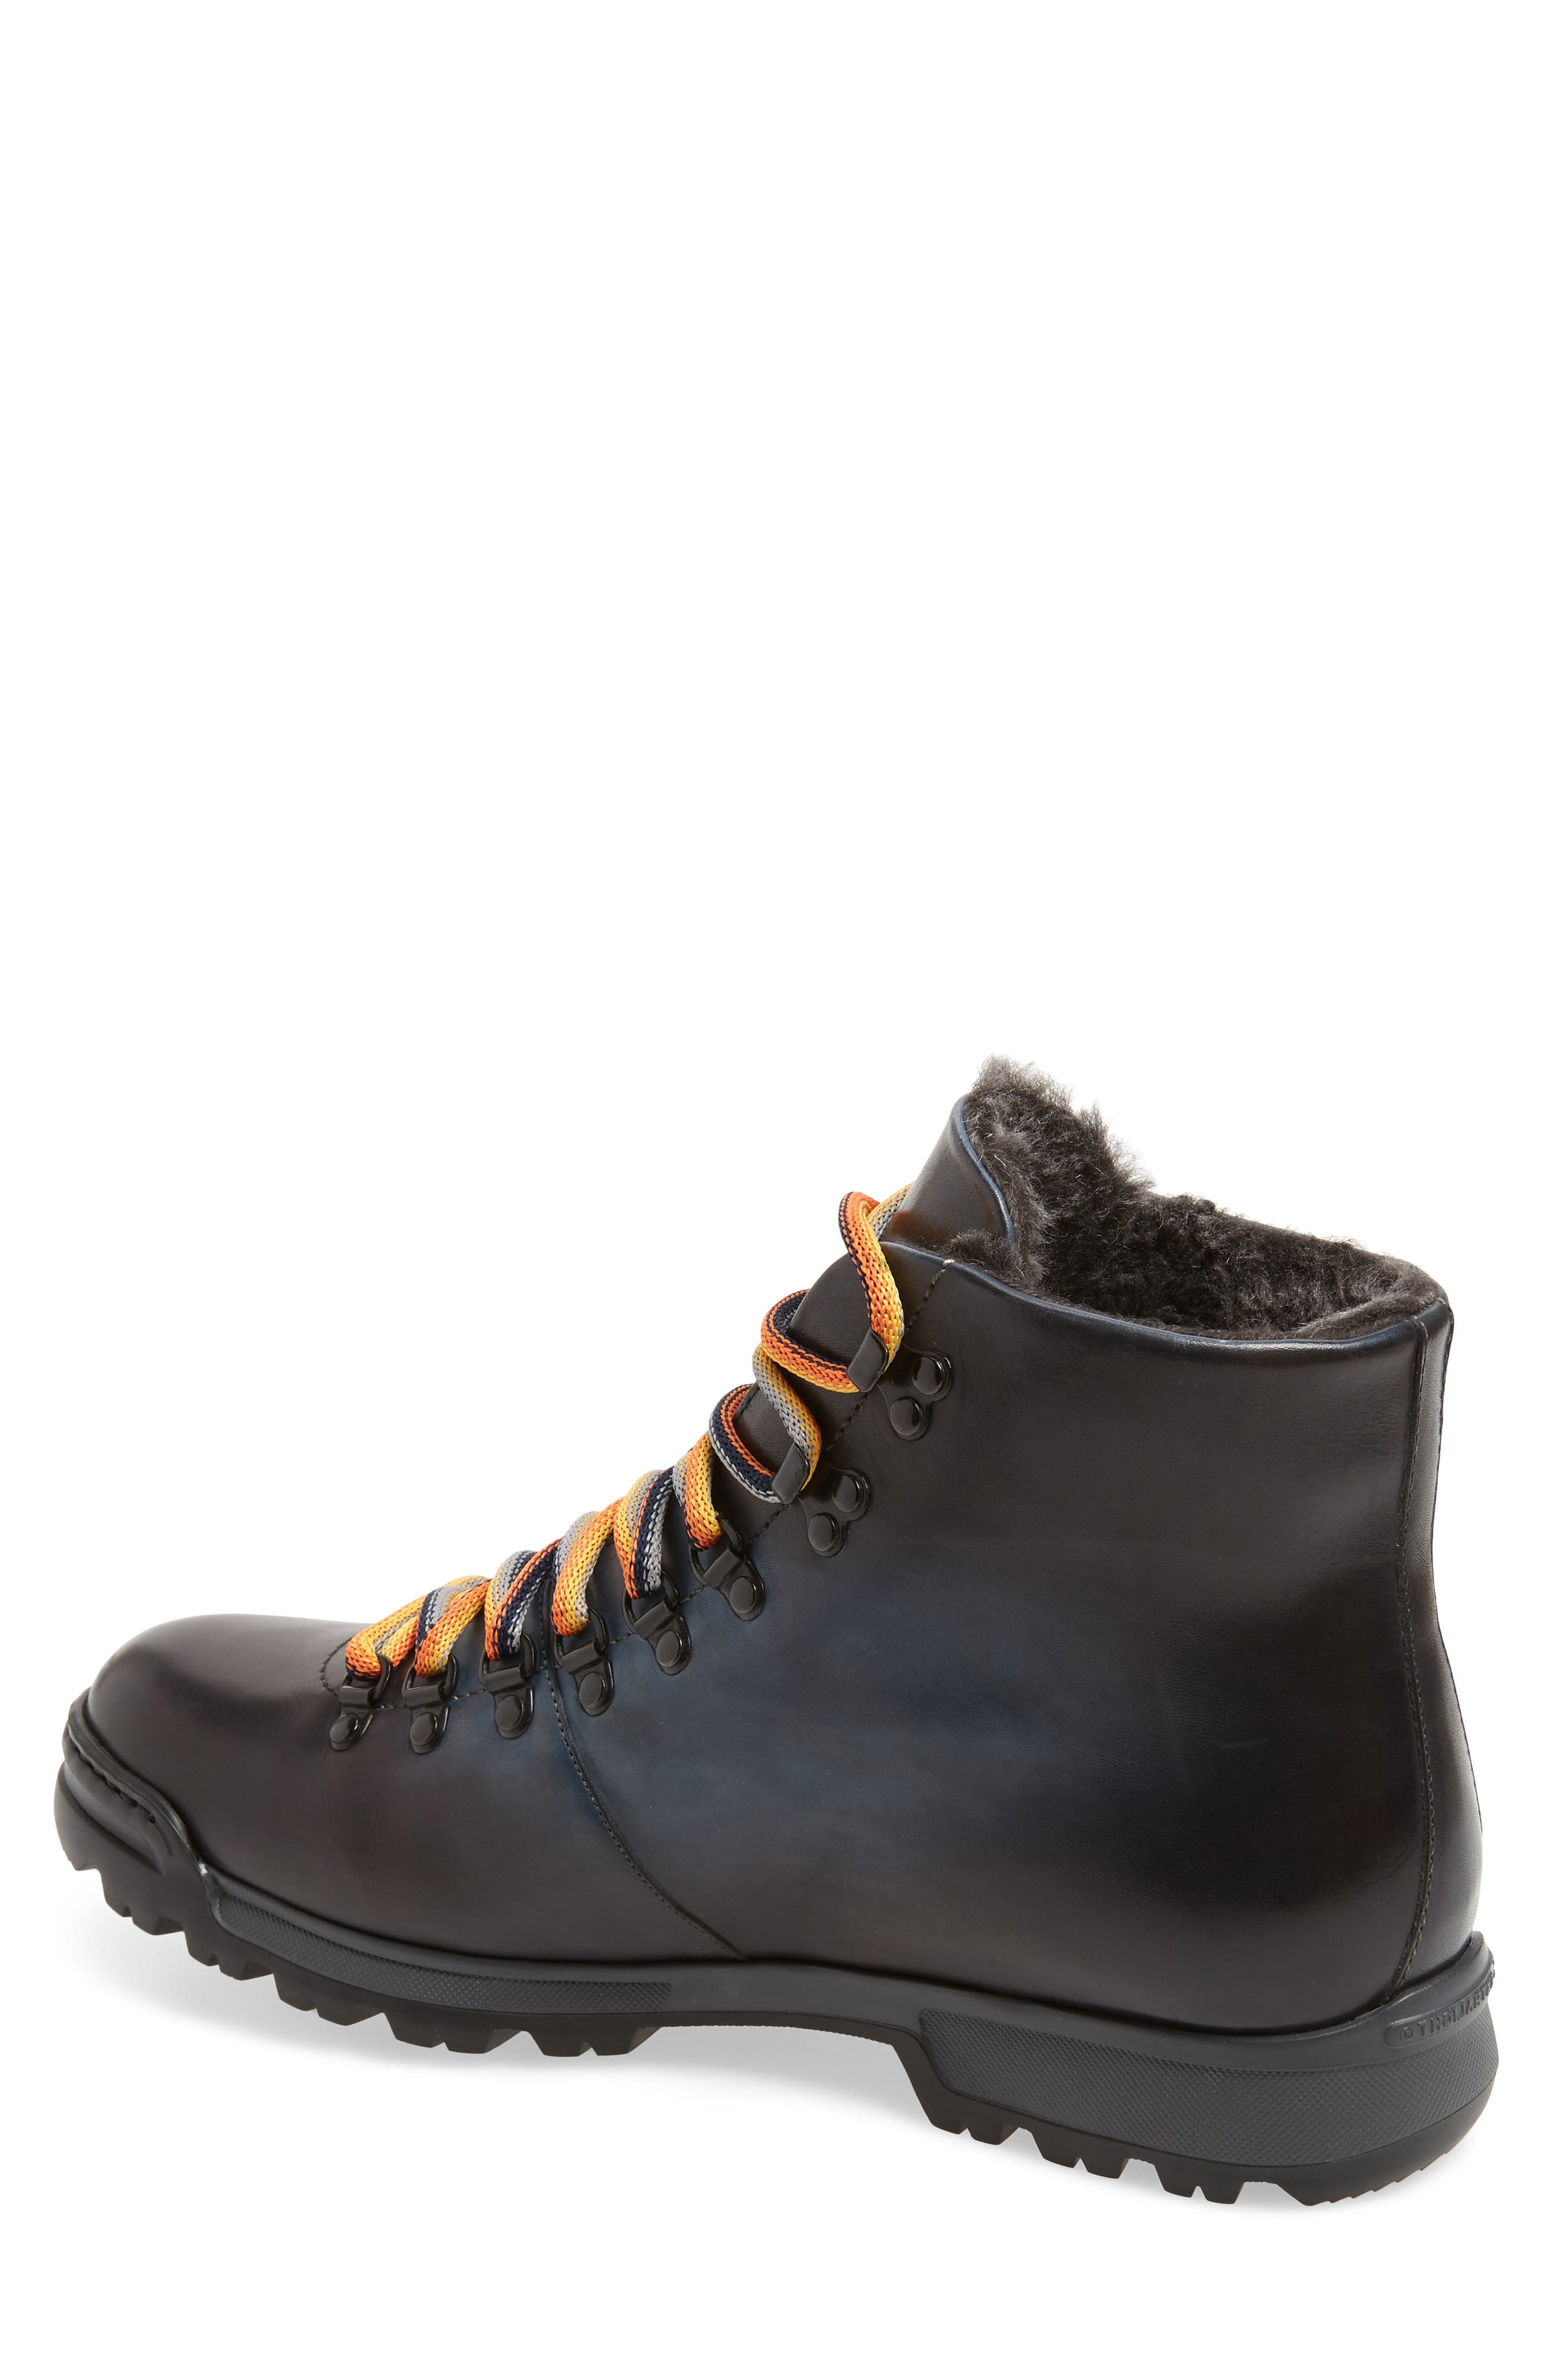 Oberon Genuine Shearling Lace-Up Hiking Boot,                             Alternate thumbnail 2, color,                             NAVY LEATHER